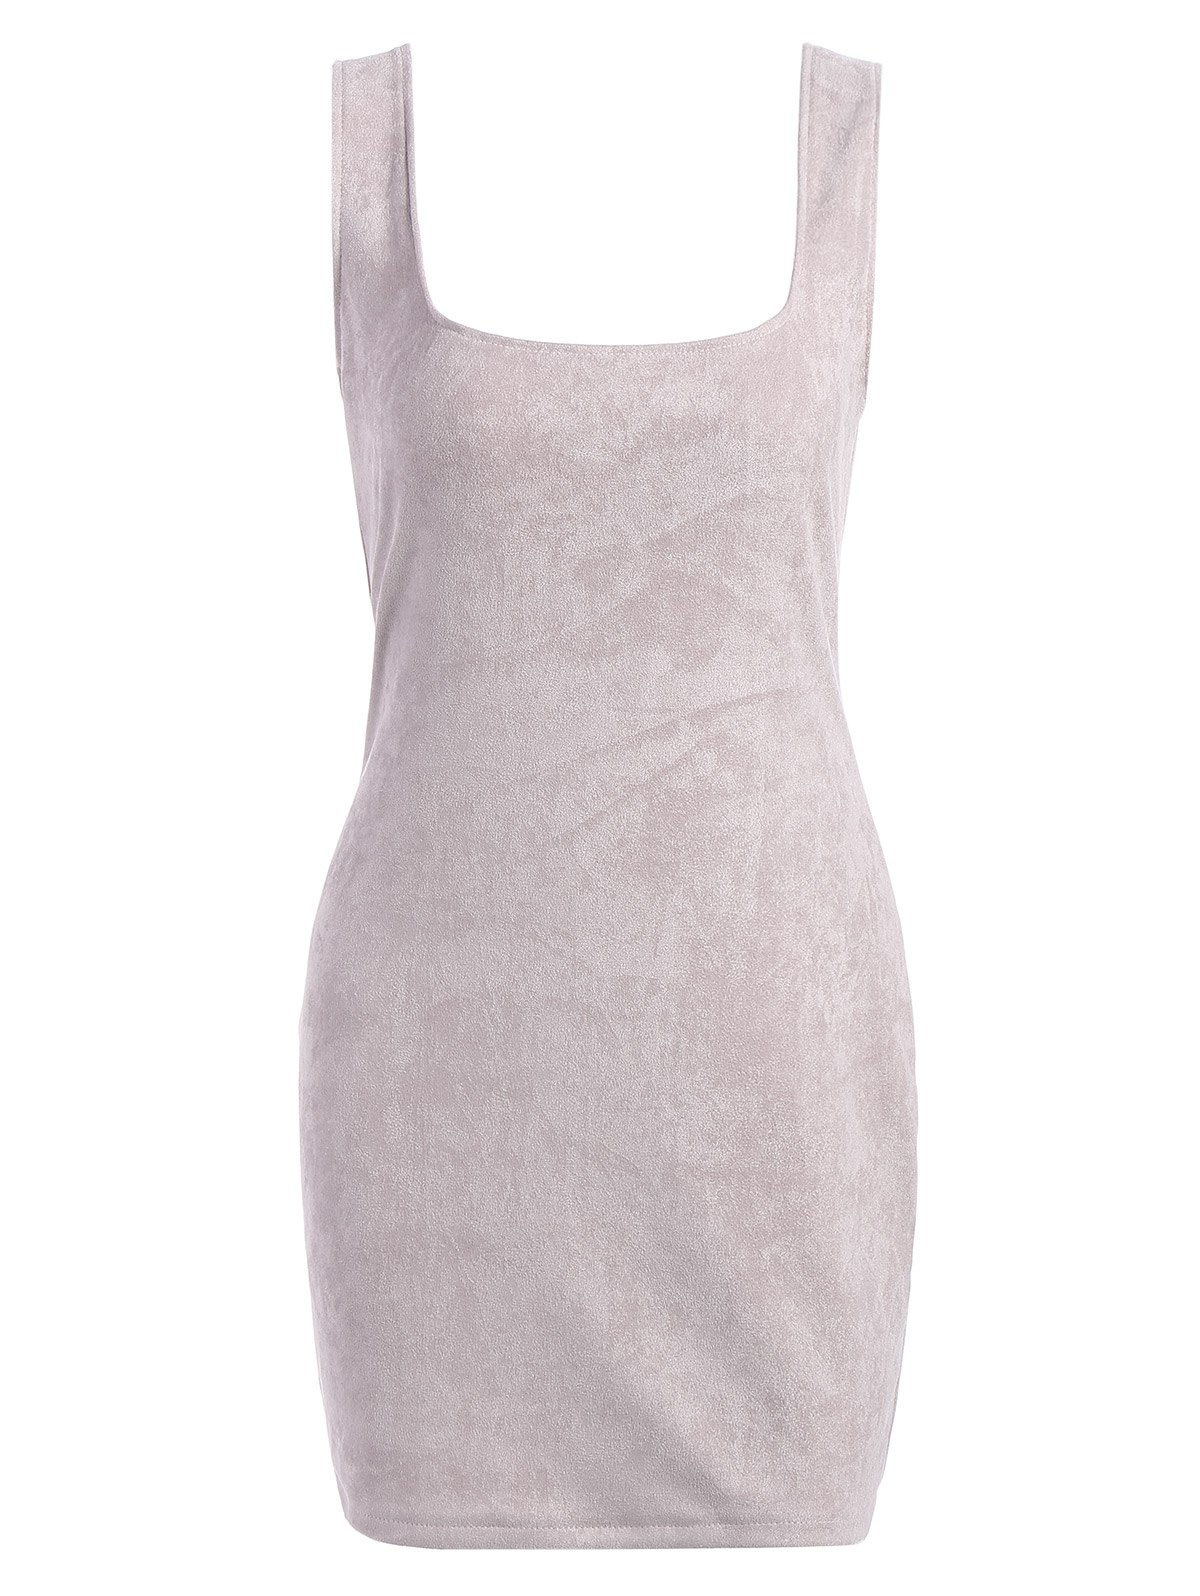 Open Back Suede Fitted DressWomen<br><br><br>Size: L<br>Color: GREY WHITE